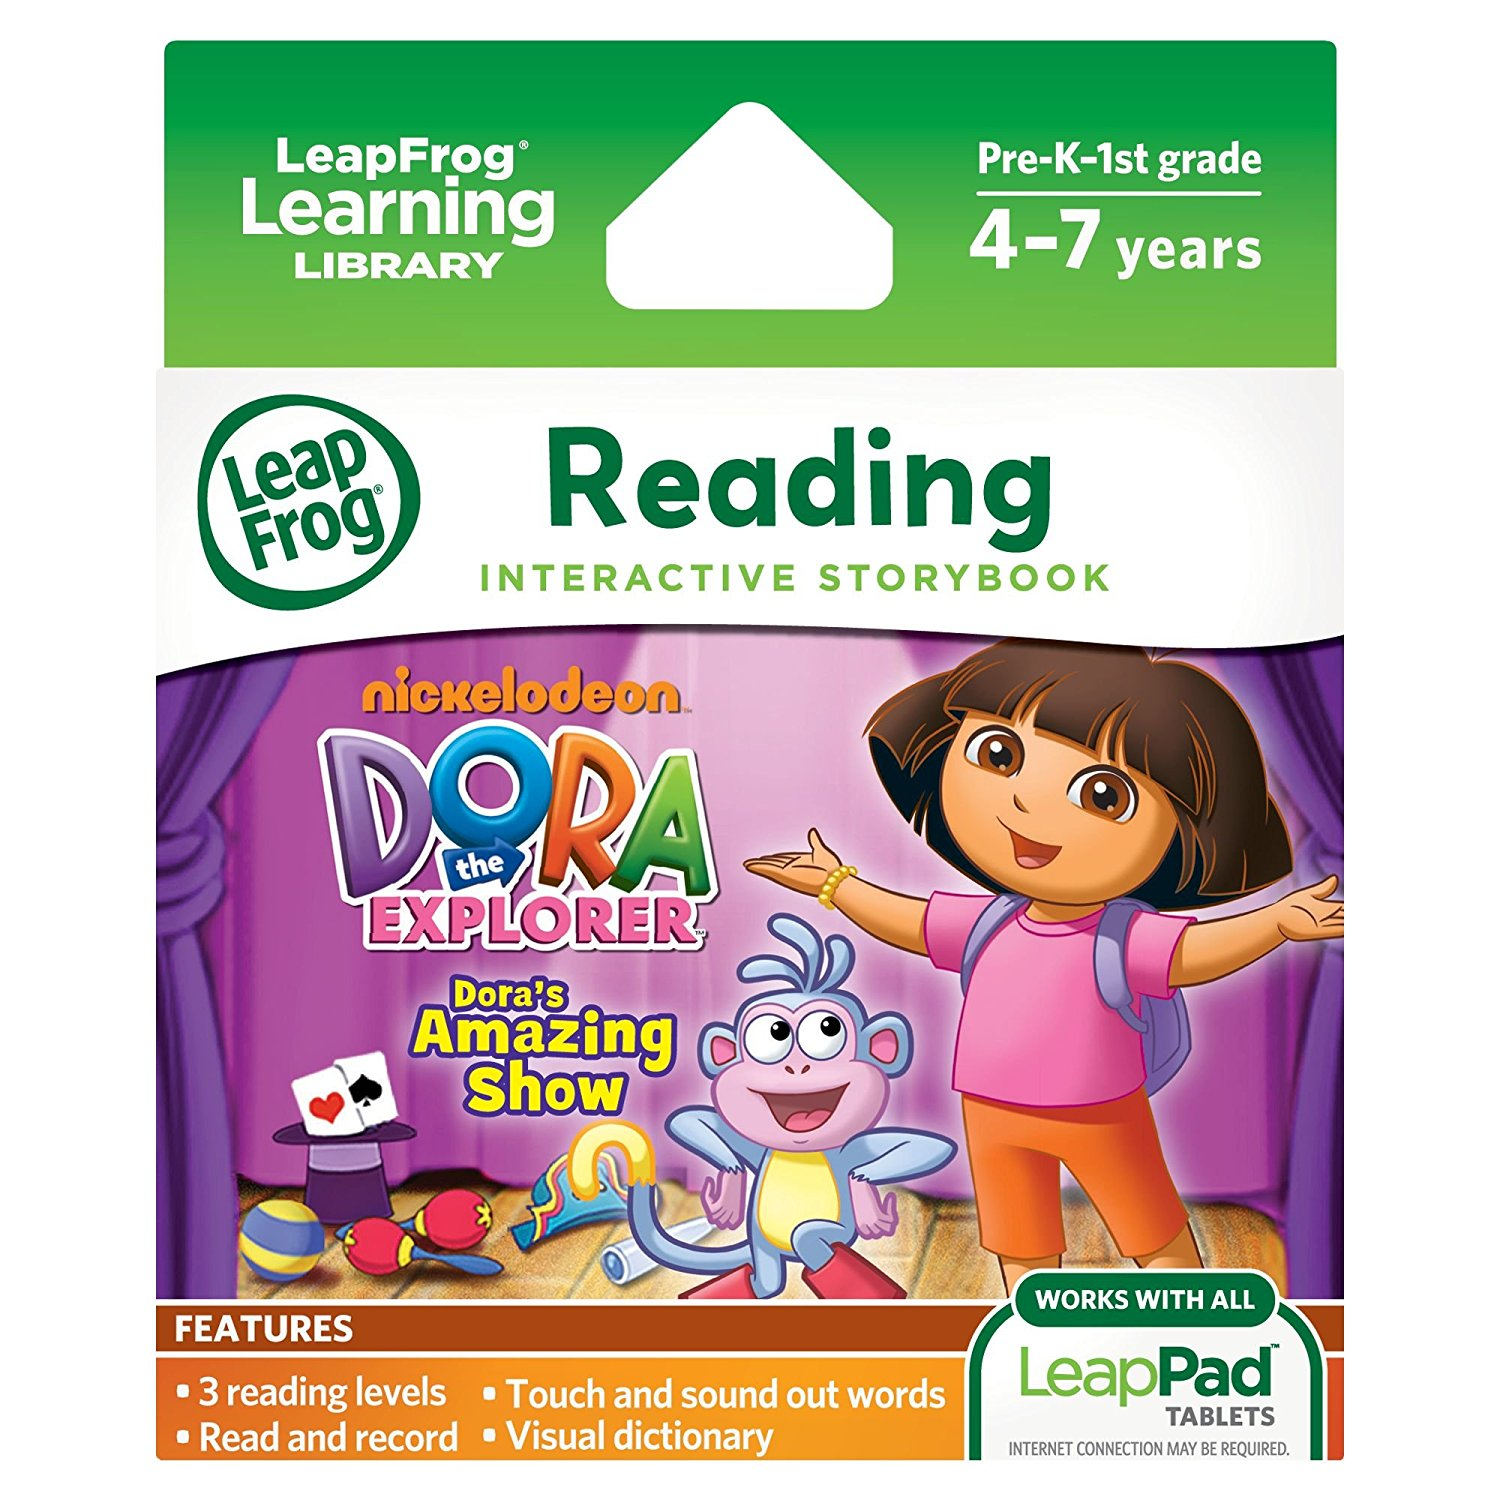 LeapPad Dora's Amazing Show Ultra eBook (works with all LeapPad tablets)Works with all... by